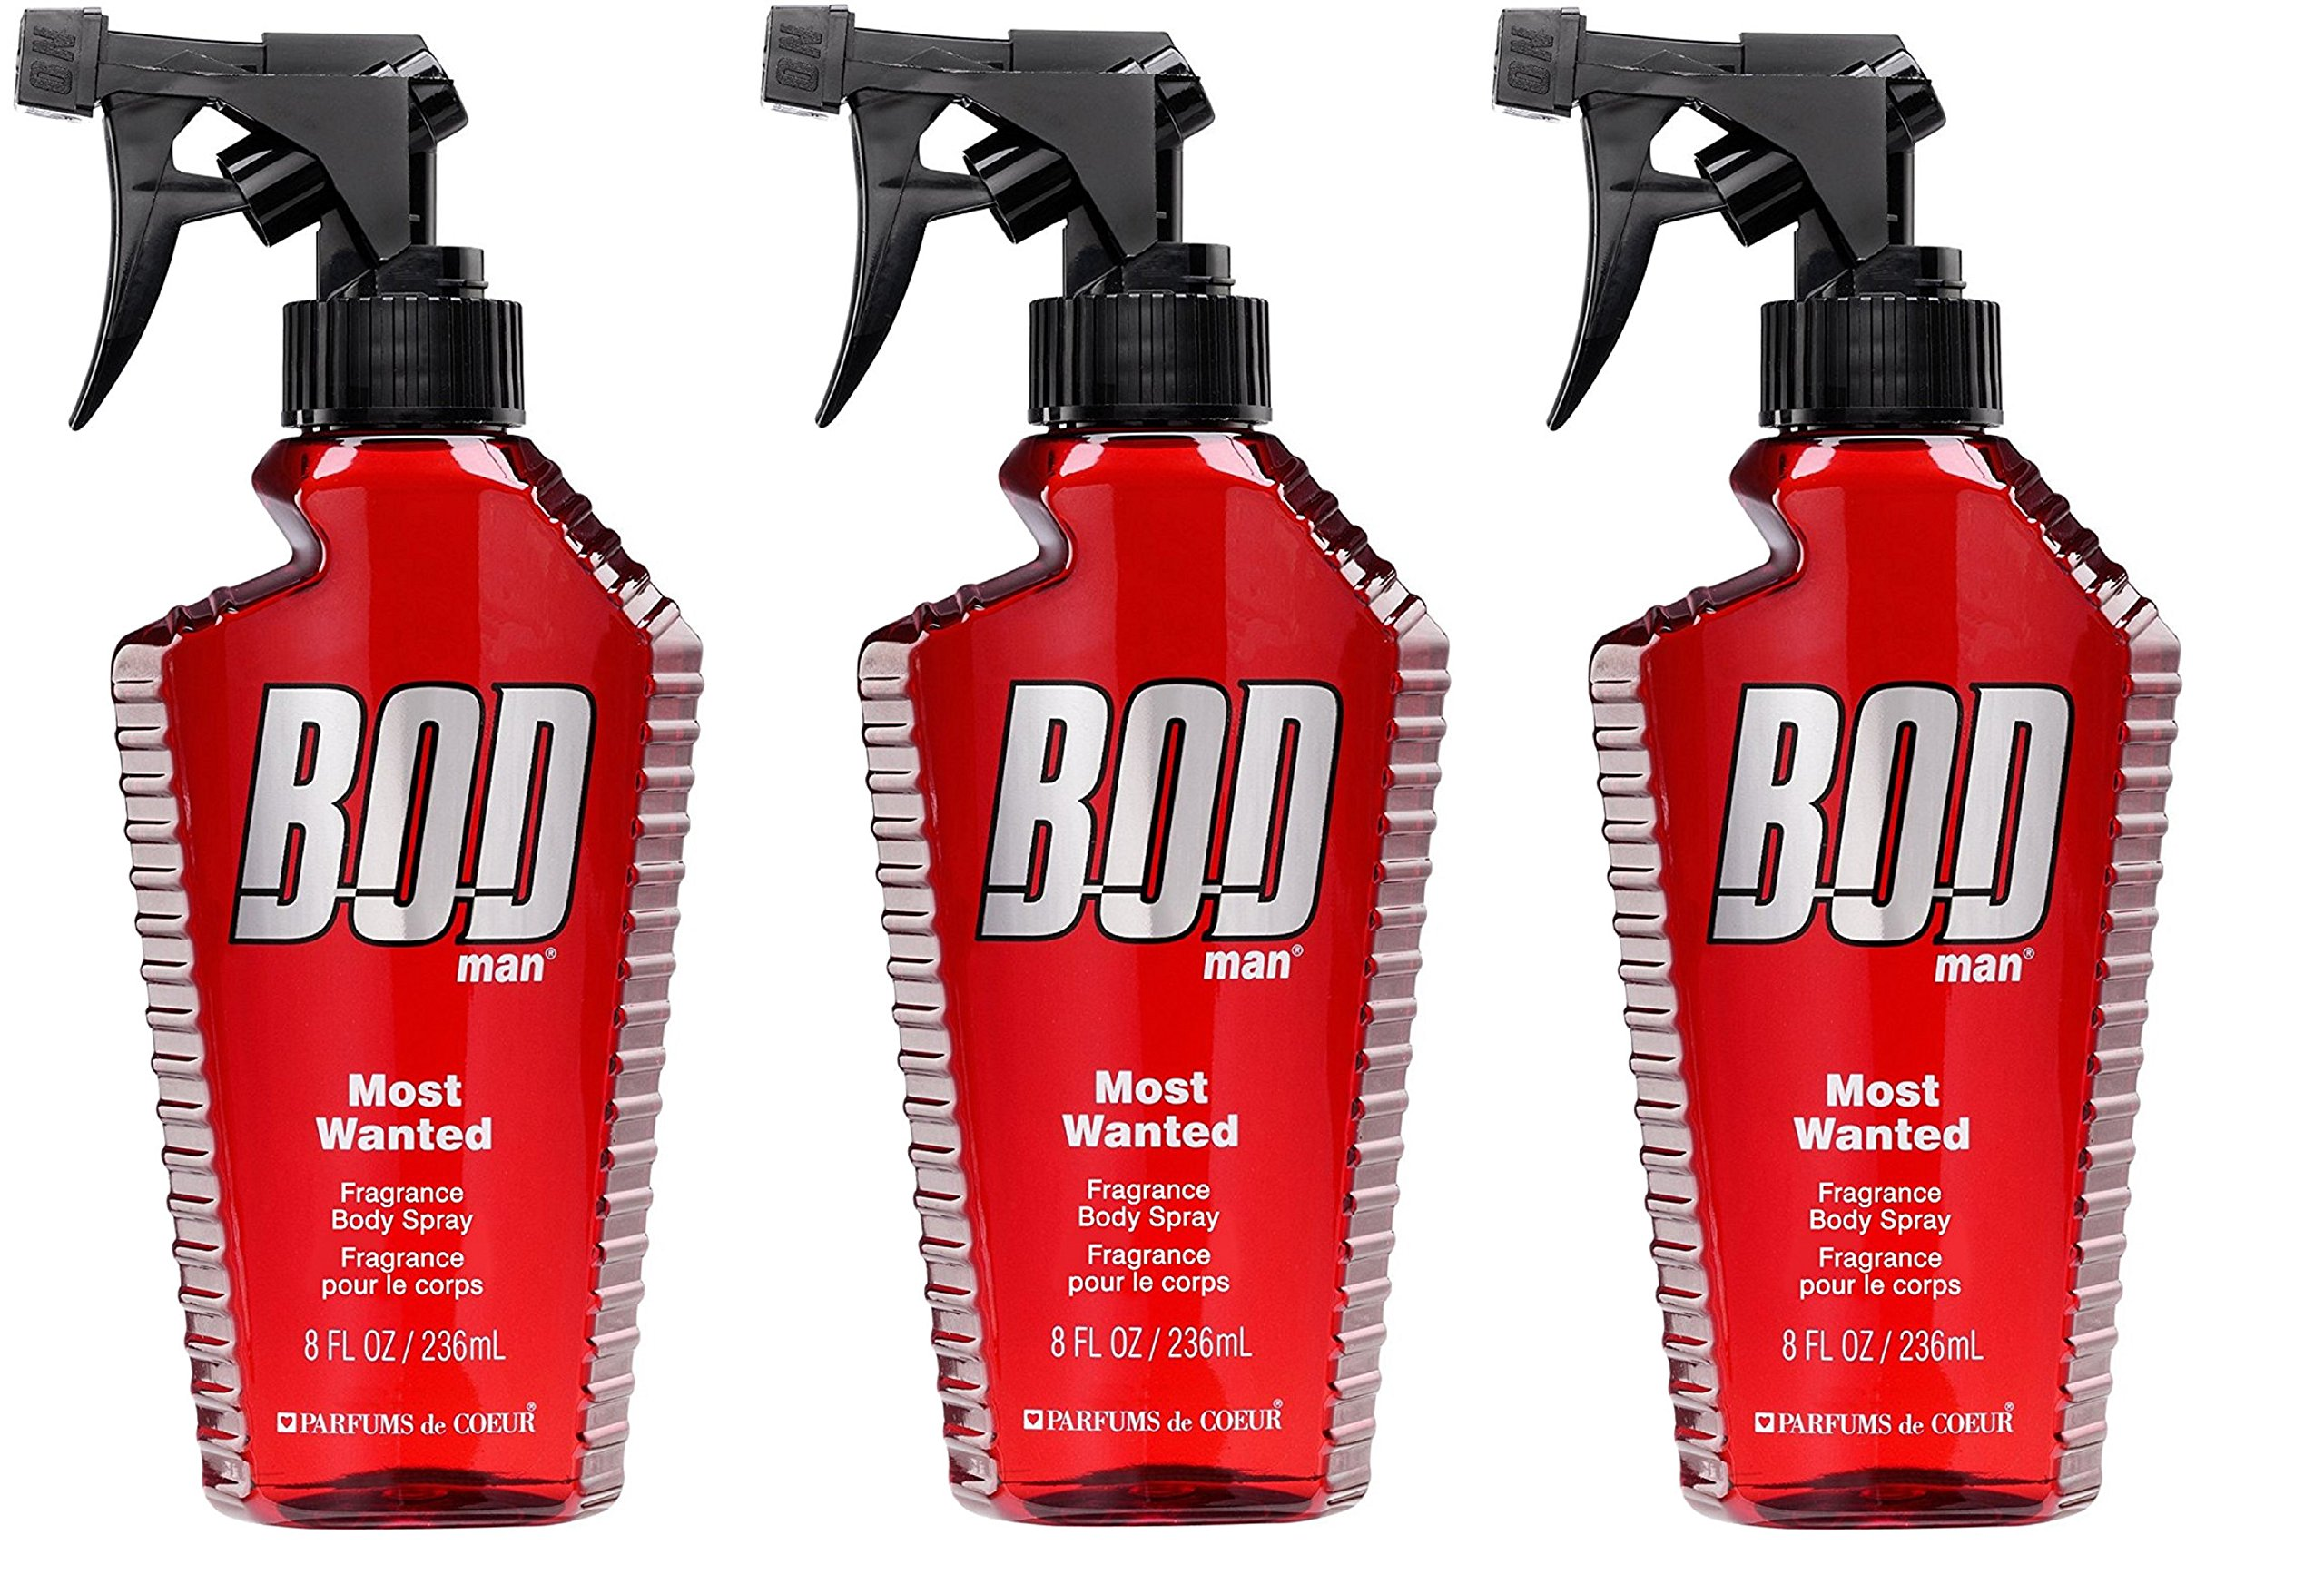 BOD Man Most Wanted, Fragrance Body Spray, 8 Fluid Ounce. Pack of 3.